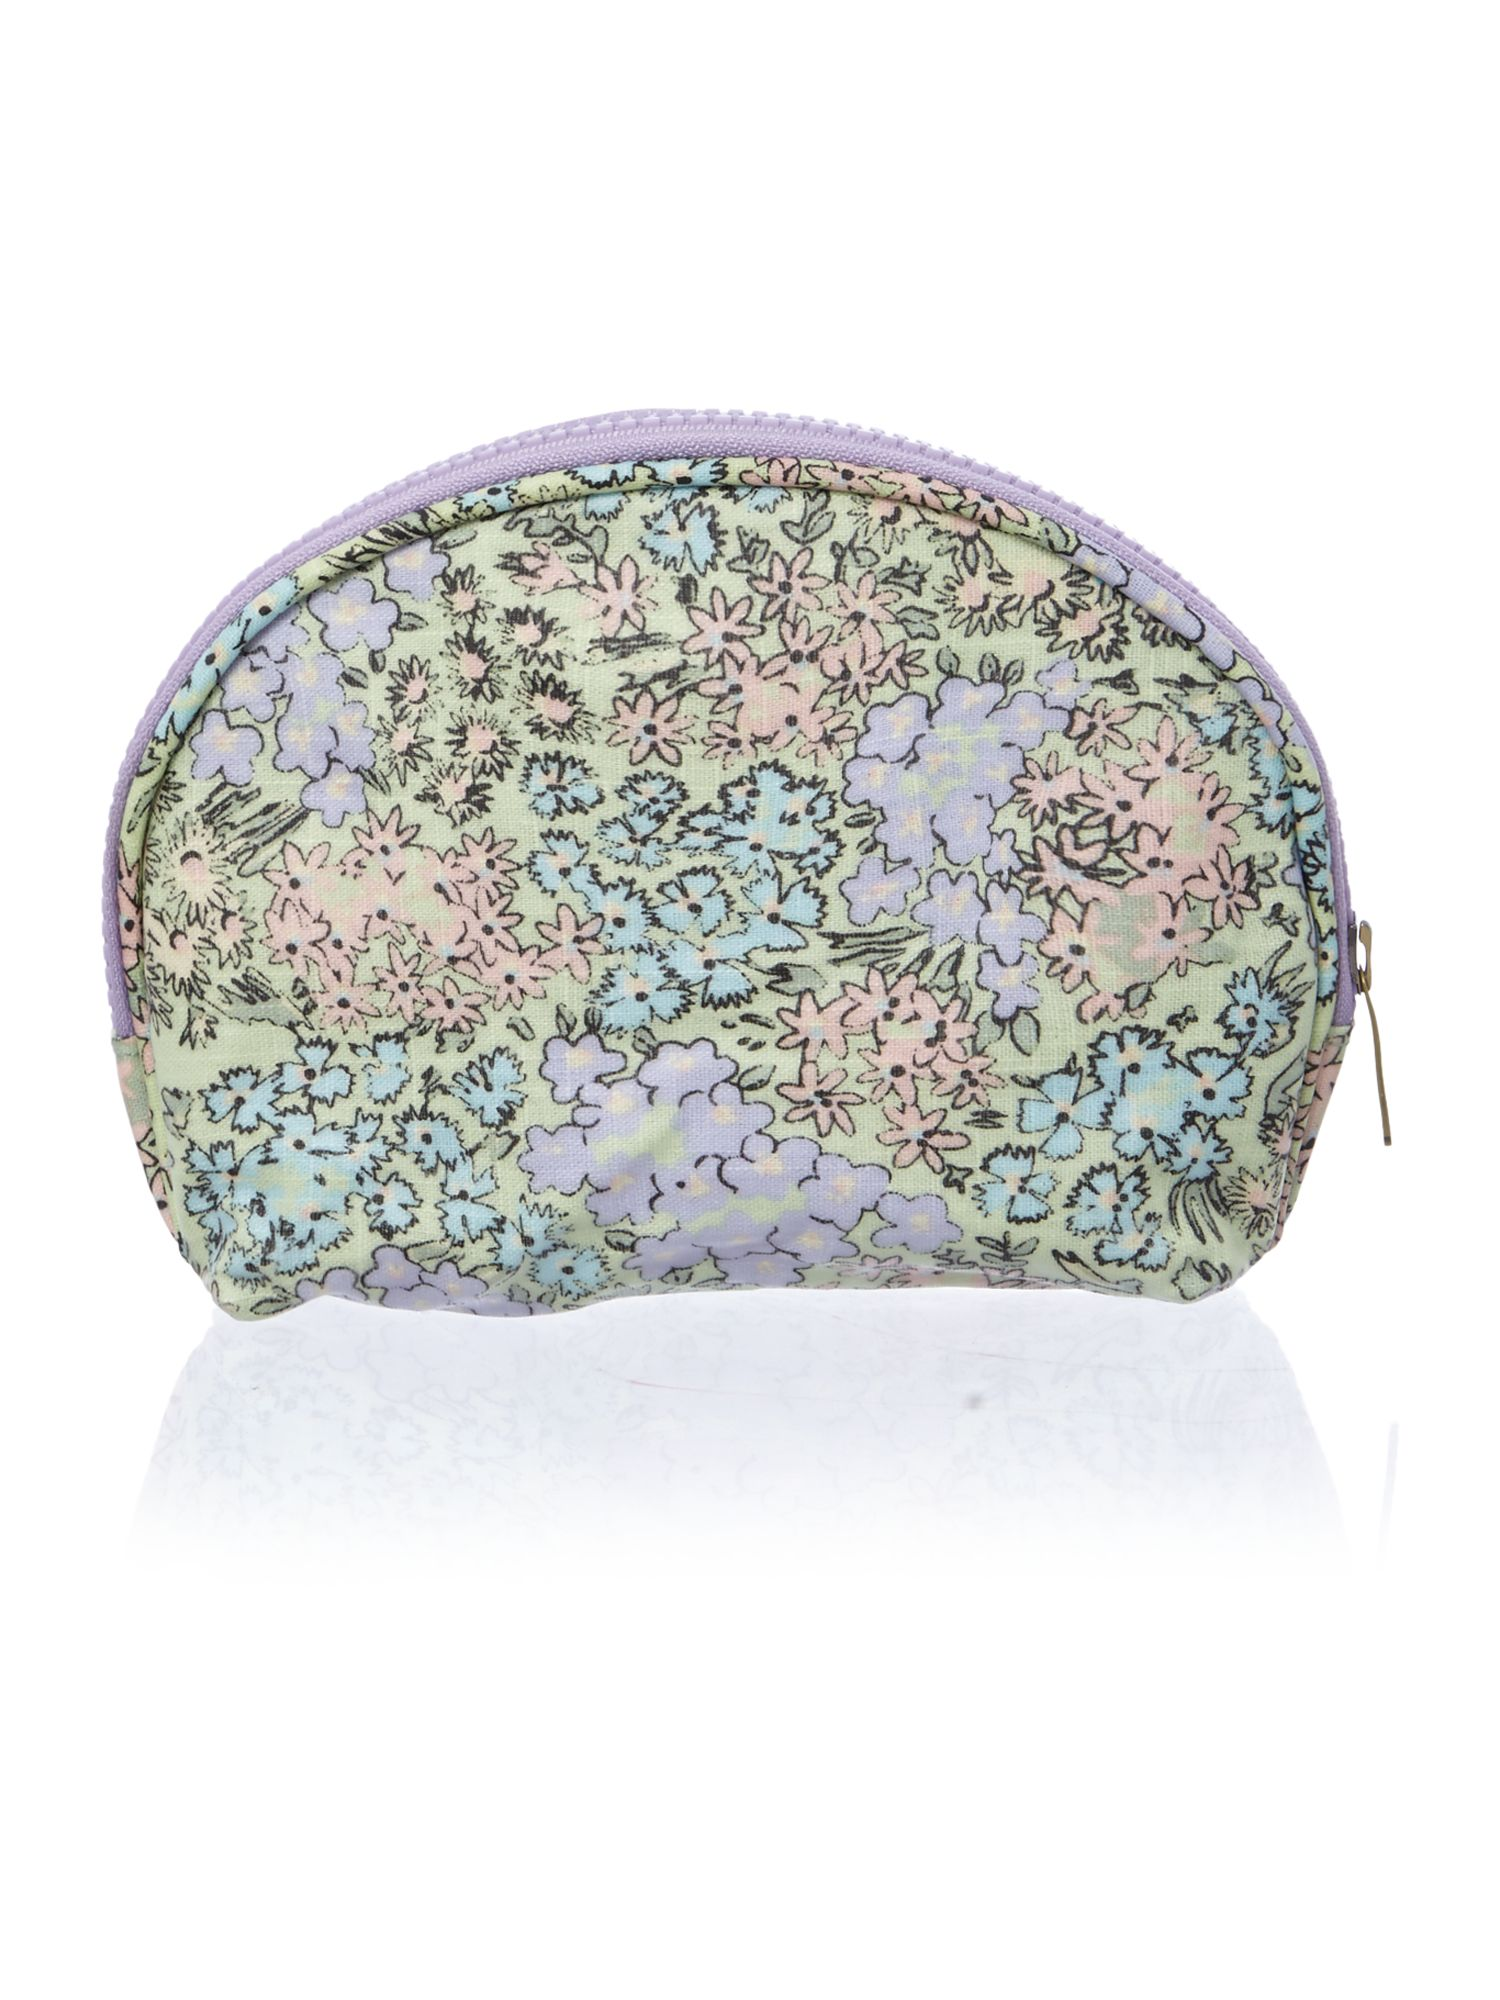 Busy lizzie multi-coloured cosmetic bag set